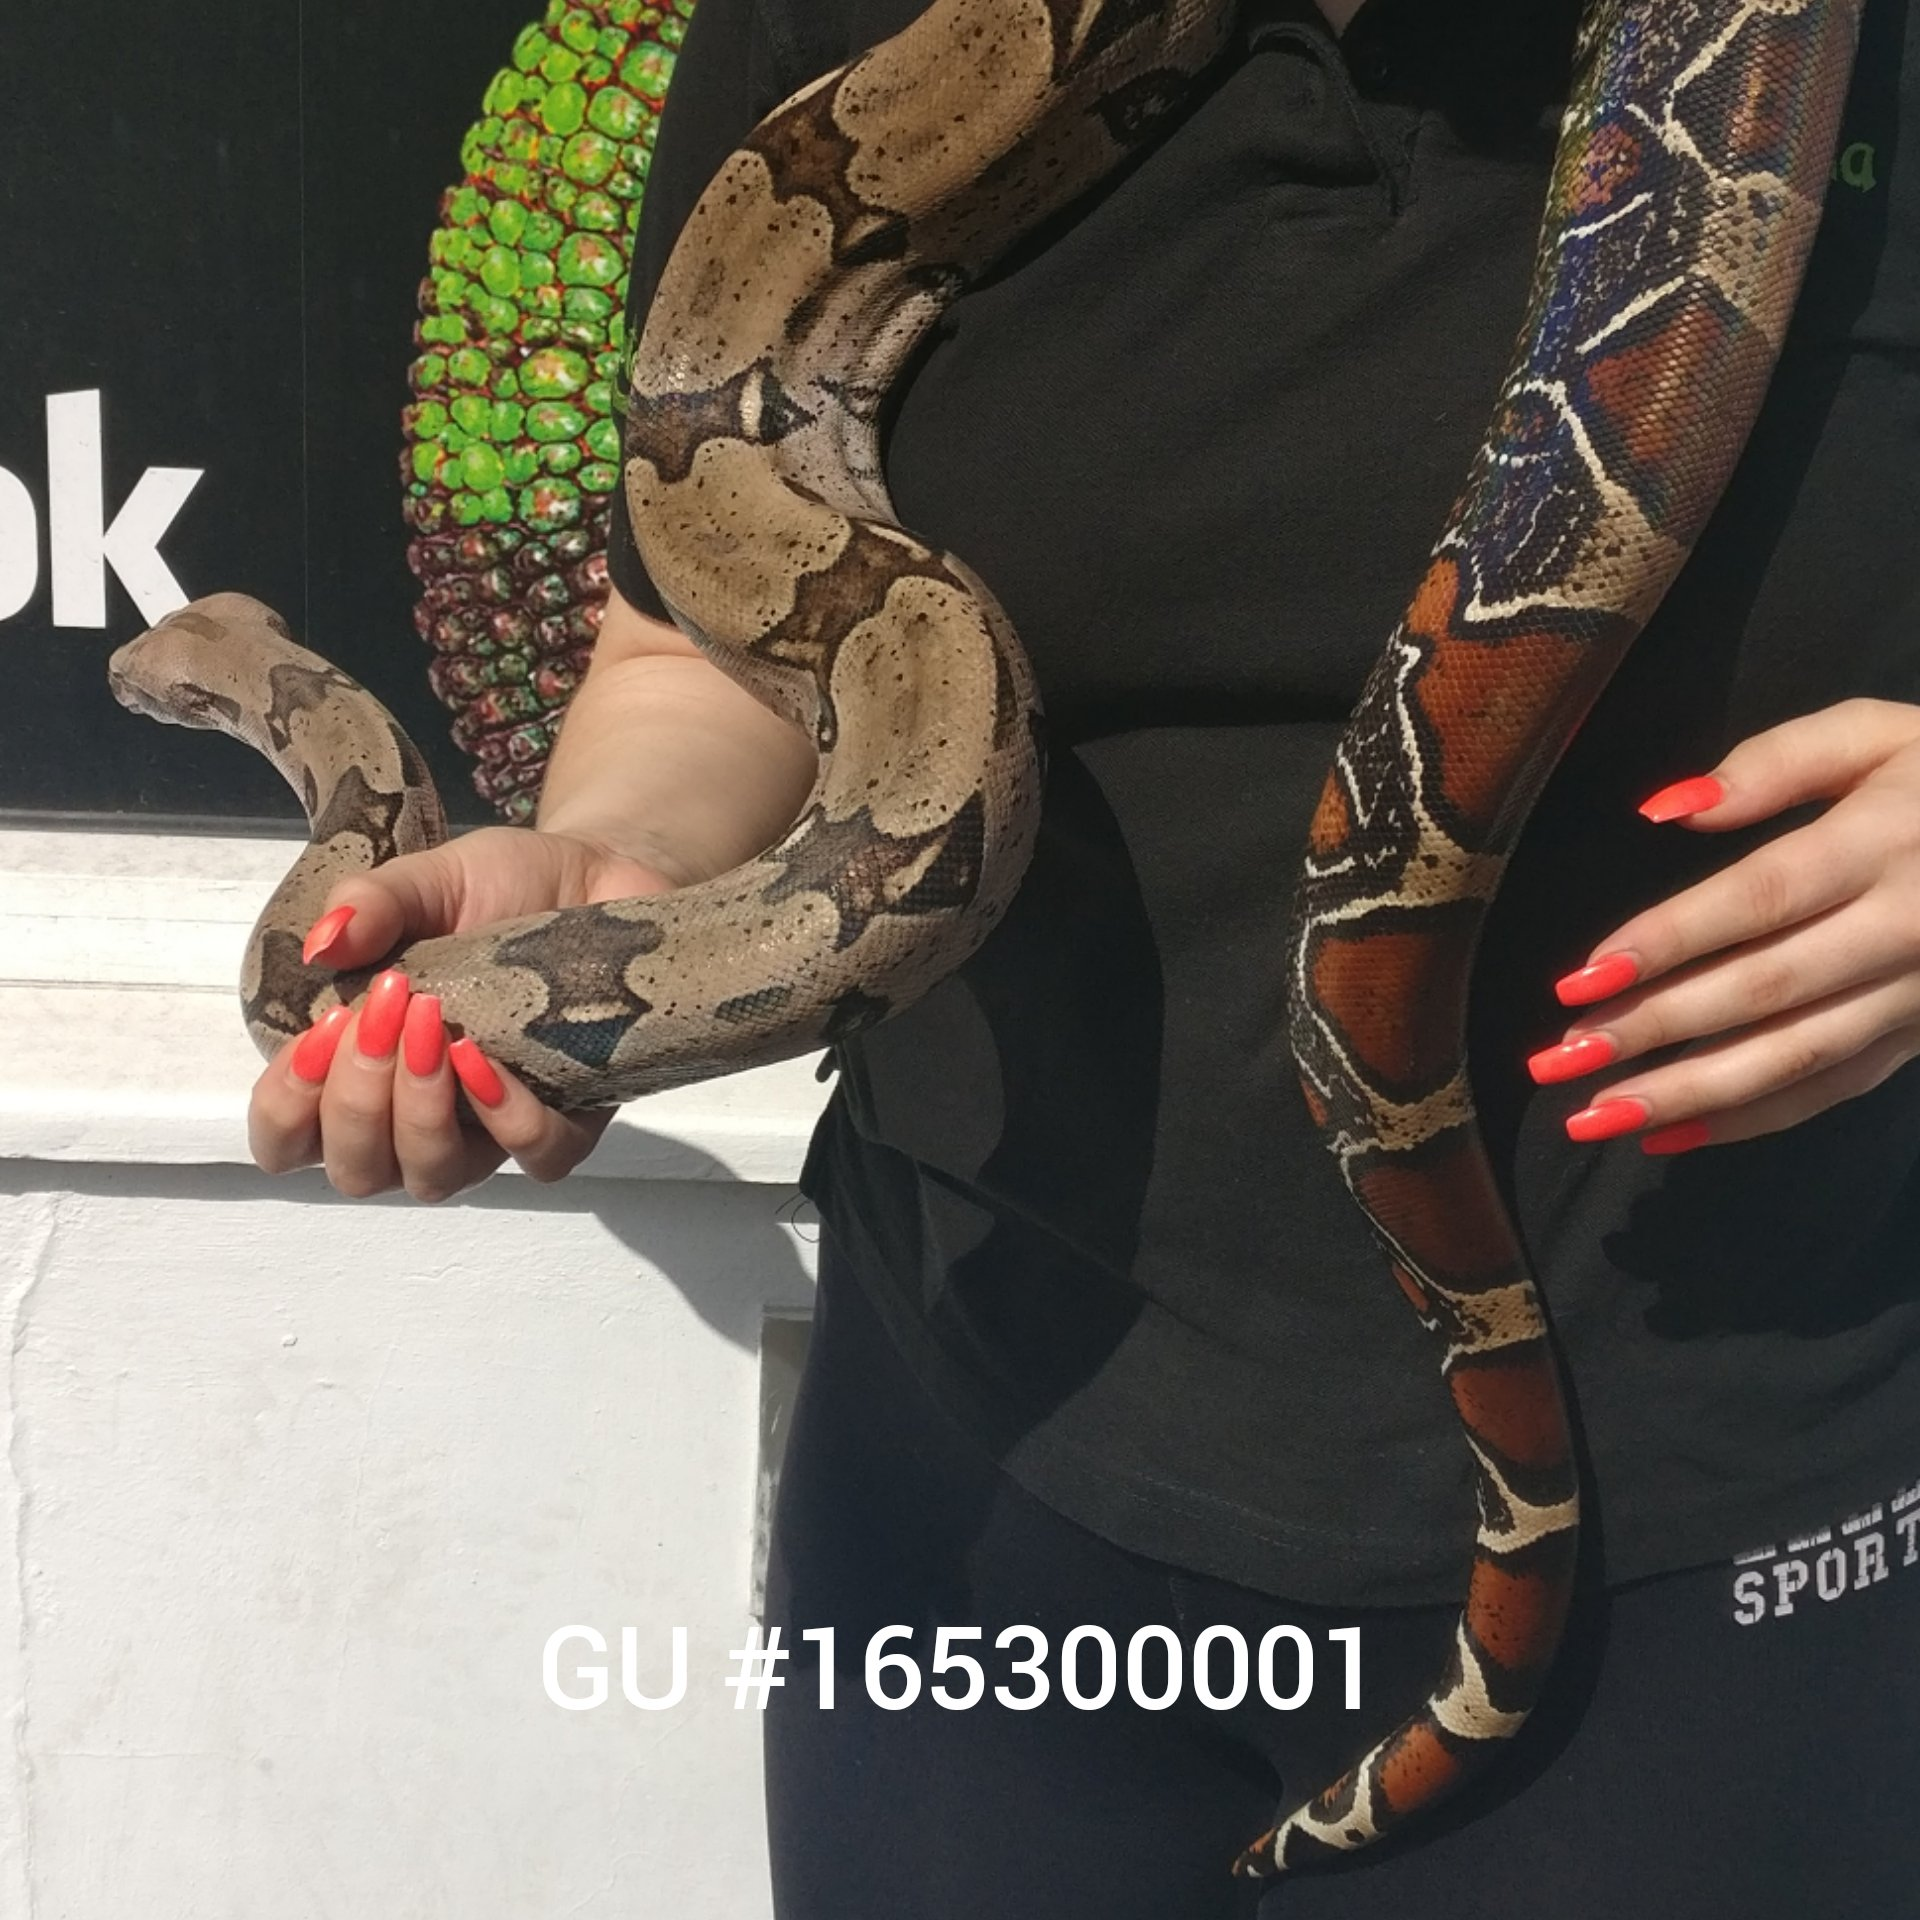 Guyana Red Tail Boa Constrictors (Proven pair)